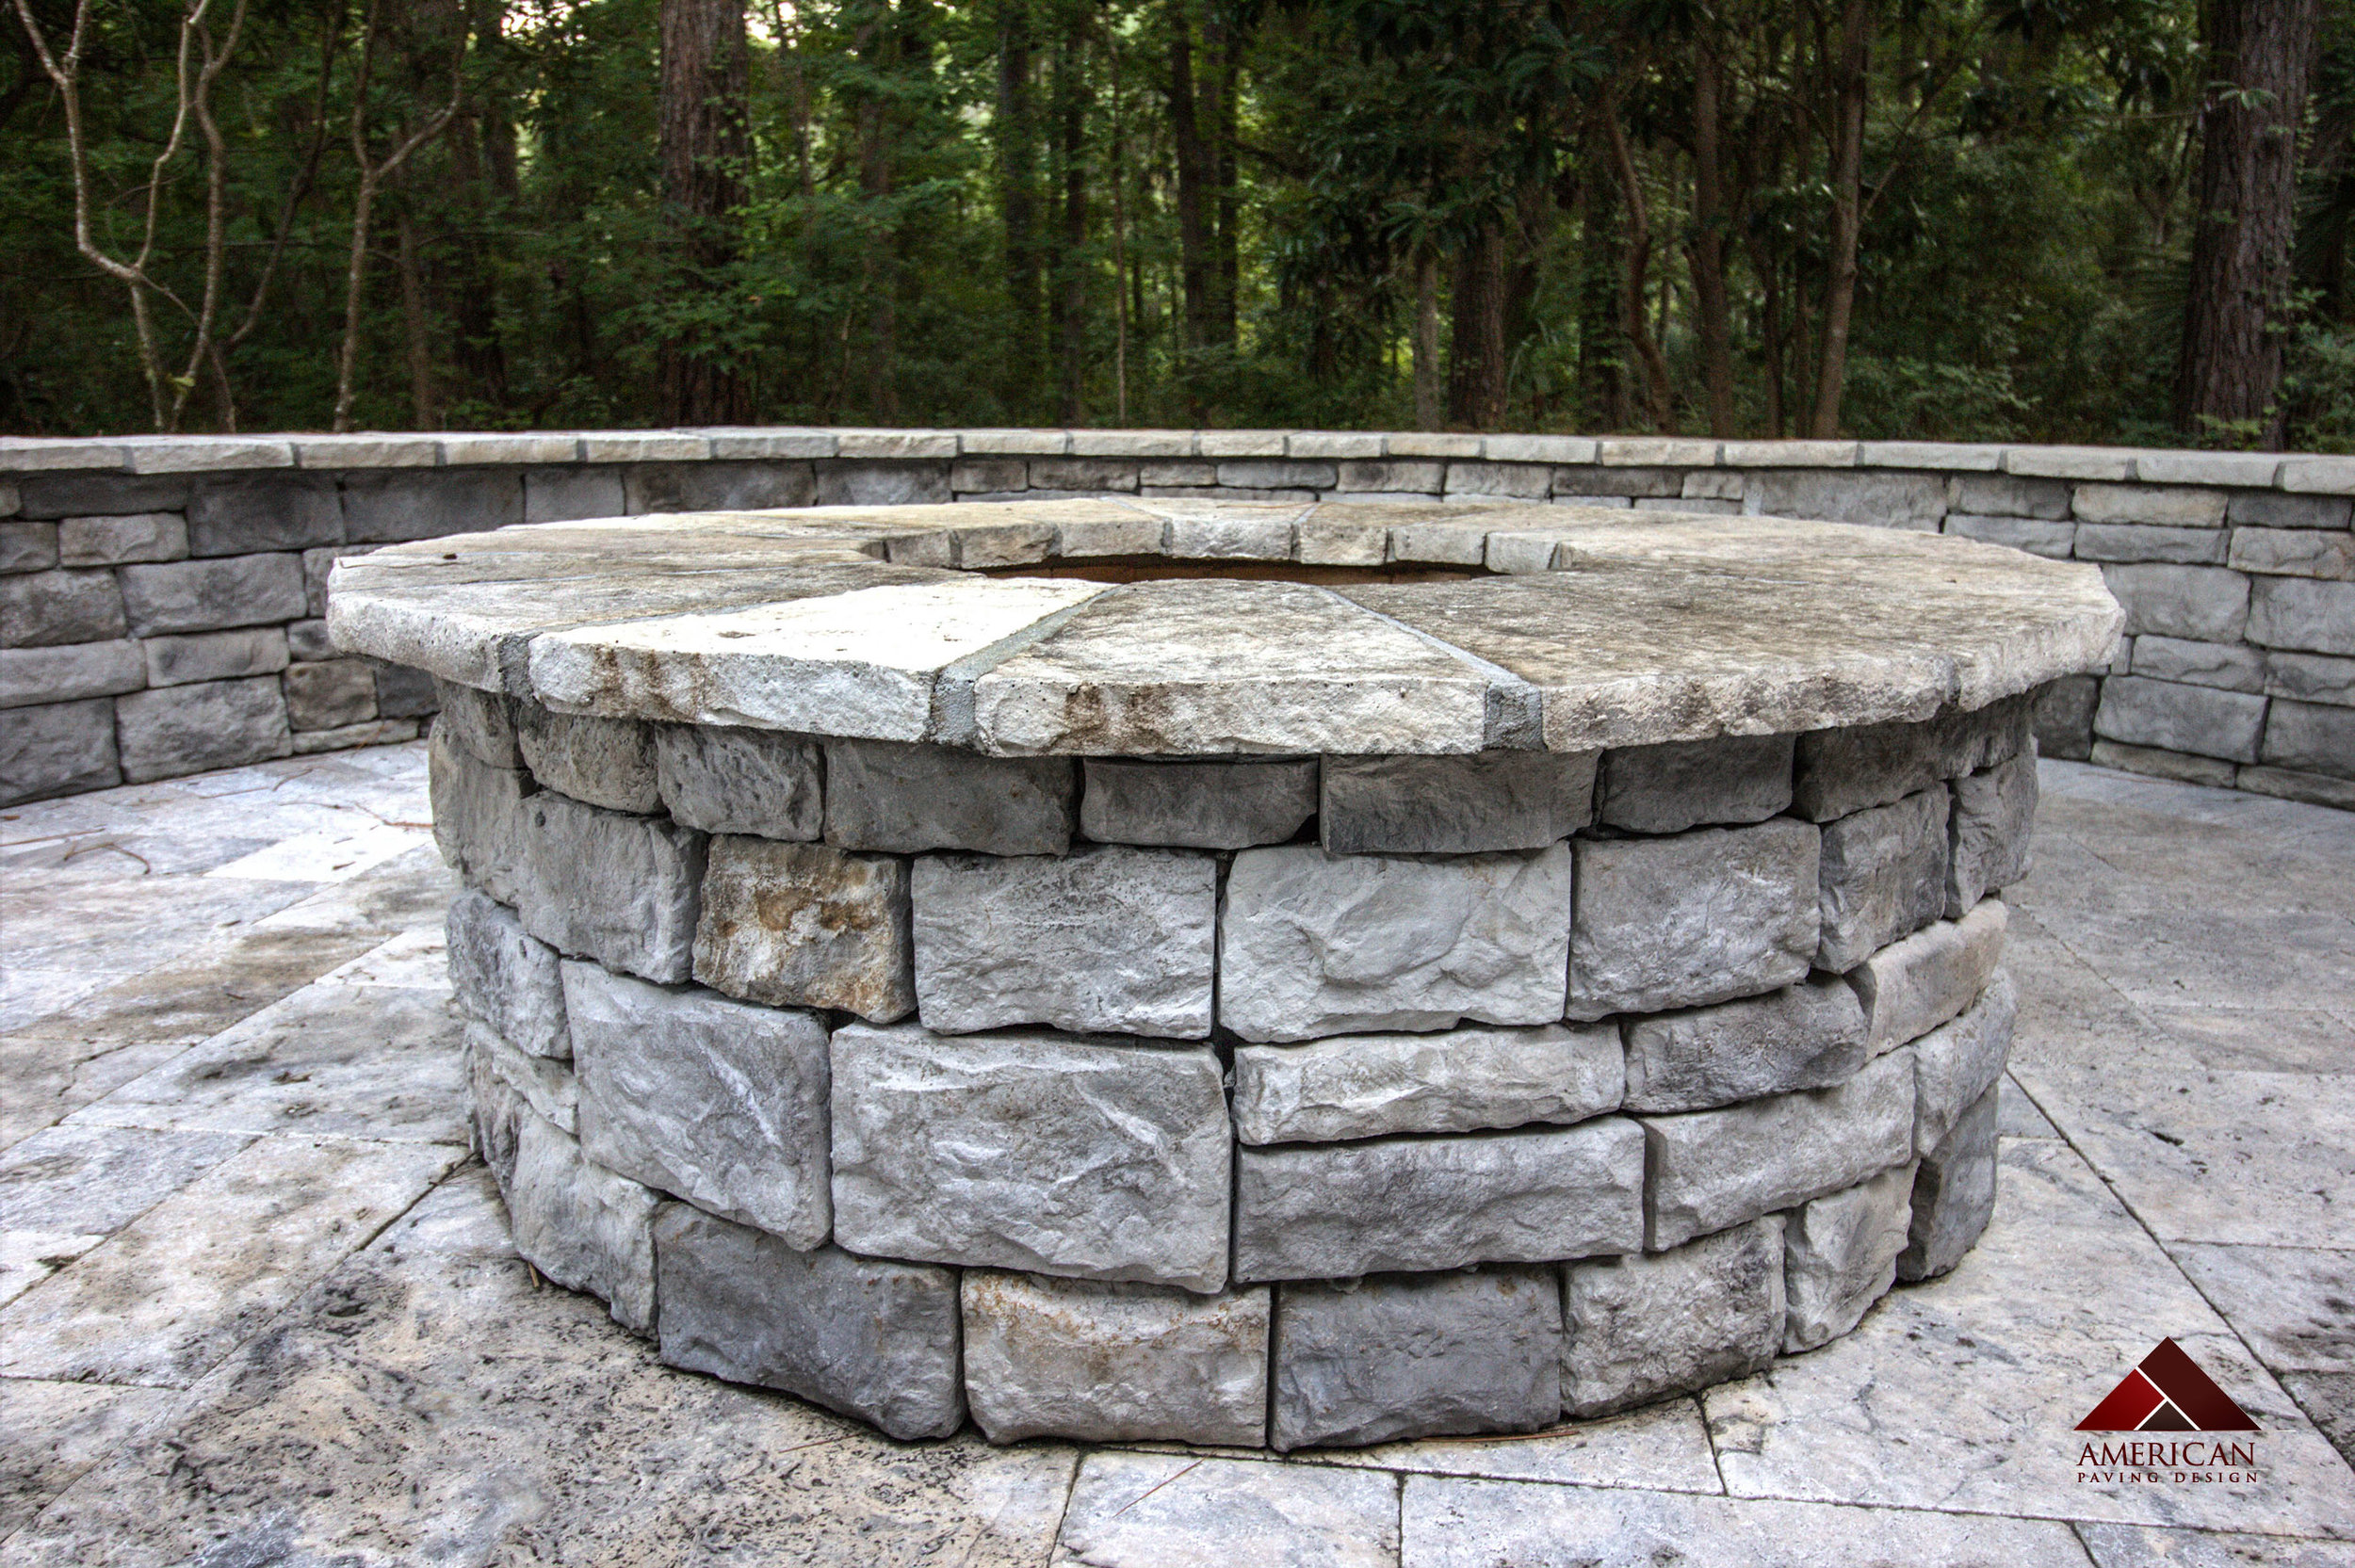 This Outdoor Fire Pit was built using Silver Travertine. Do you love the smell and warmth of crisp burning fire wood? Then consider adding a wood-burning fire pit to your paver patio!